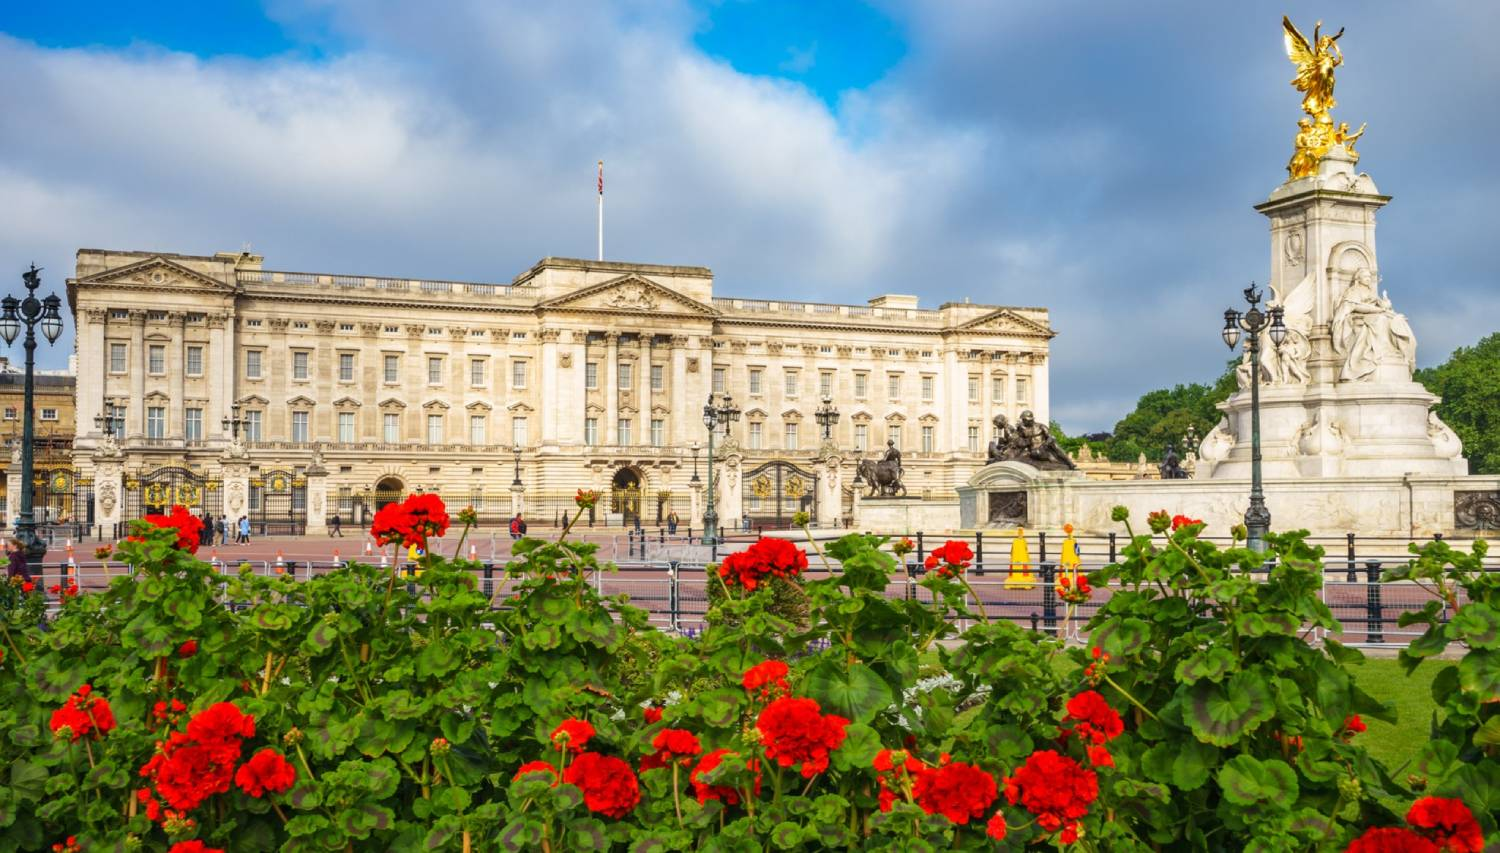 Buckingham Palace - Things To Do In London